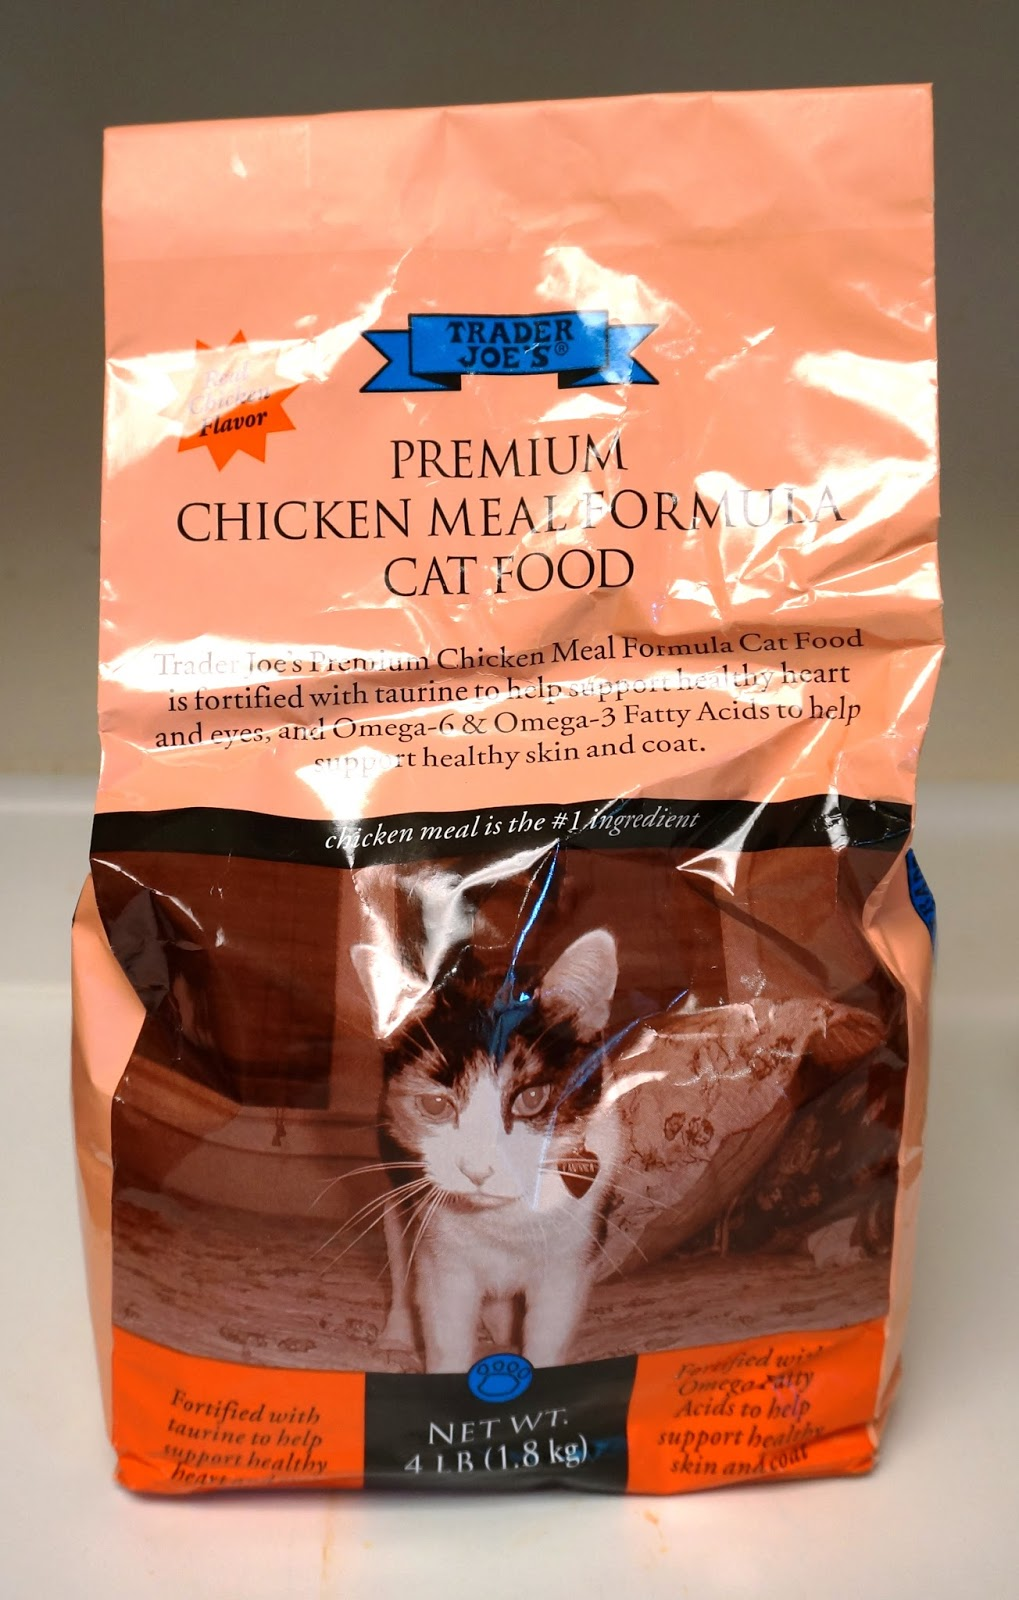 Exploring Trader Joes Trader Joes dry cat food